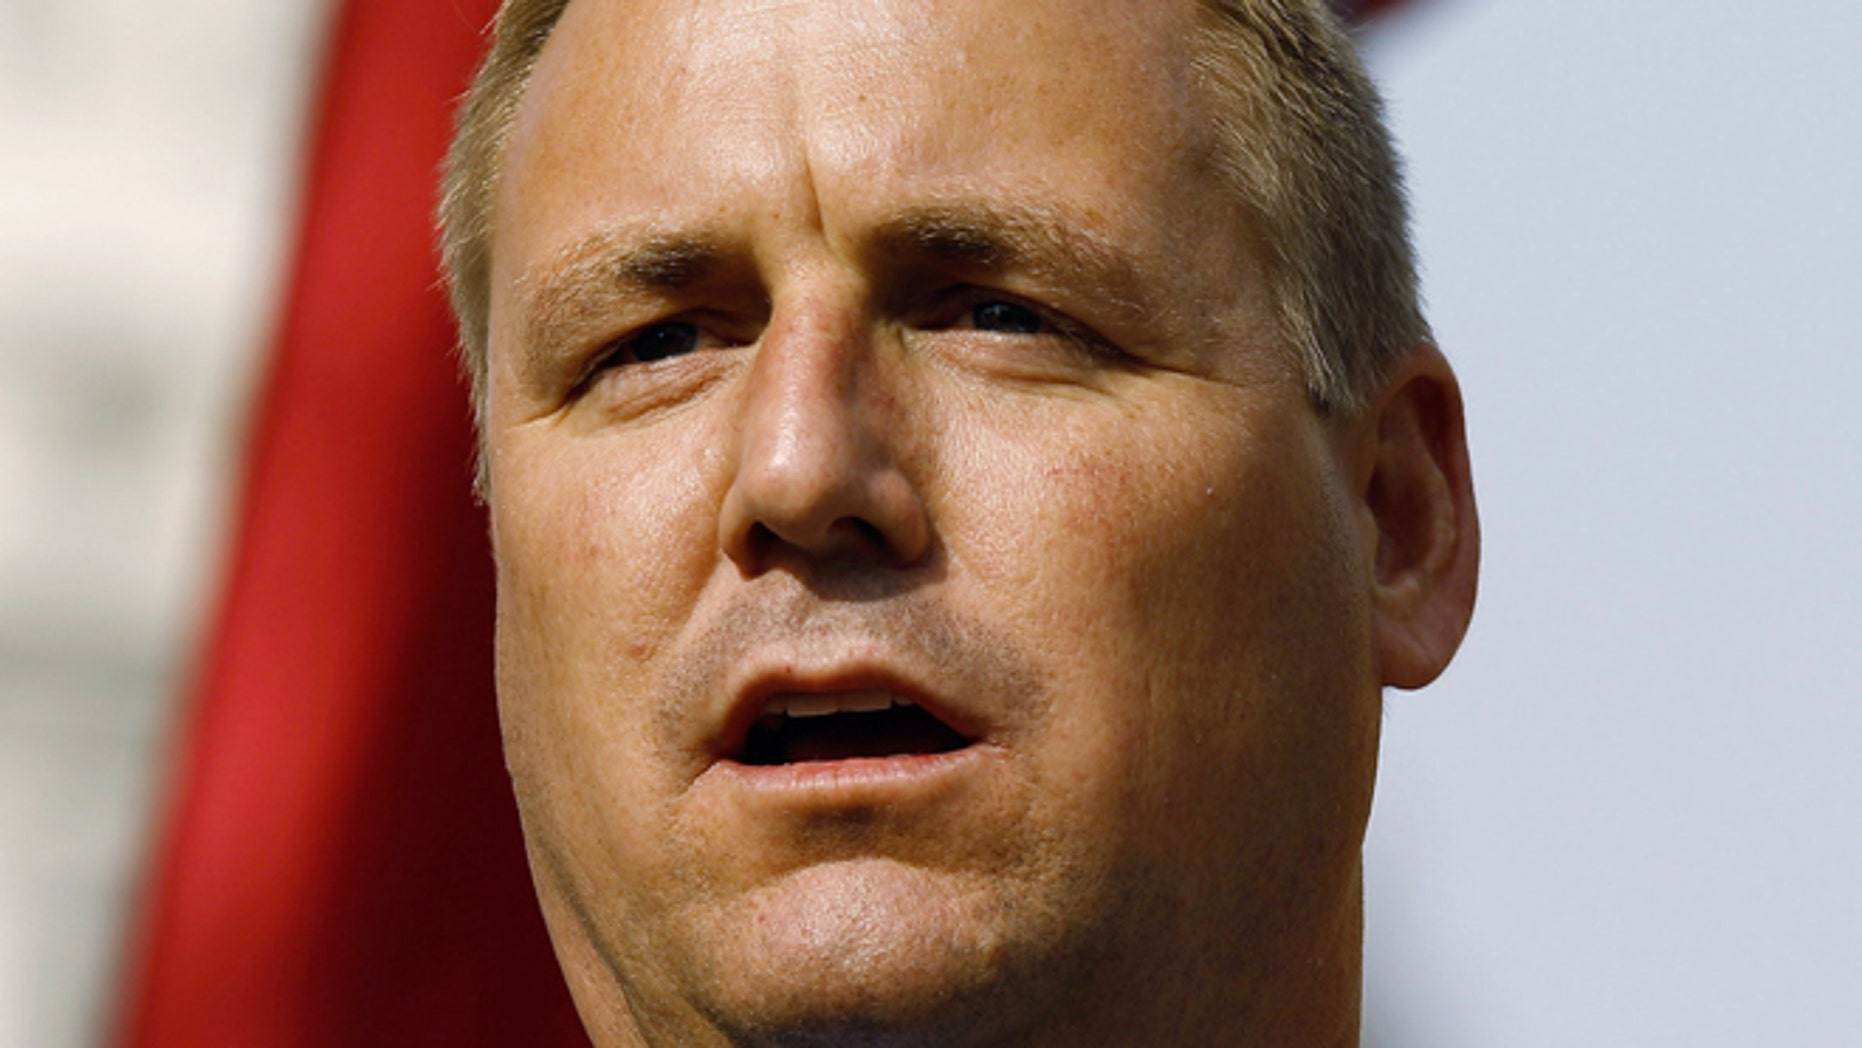 Rep. Jeff Denham (R-CA) addresses a rally on November 15, 2010 in Washington, D.C. His compromise immigration measure was prevented from coming to a vote by GOP leadership. (Photo by Chip Somodevilla/Getty Images)